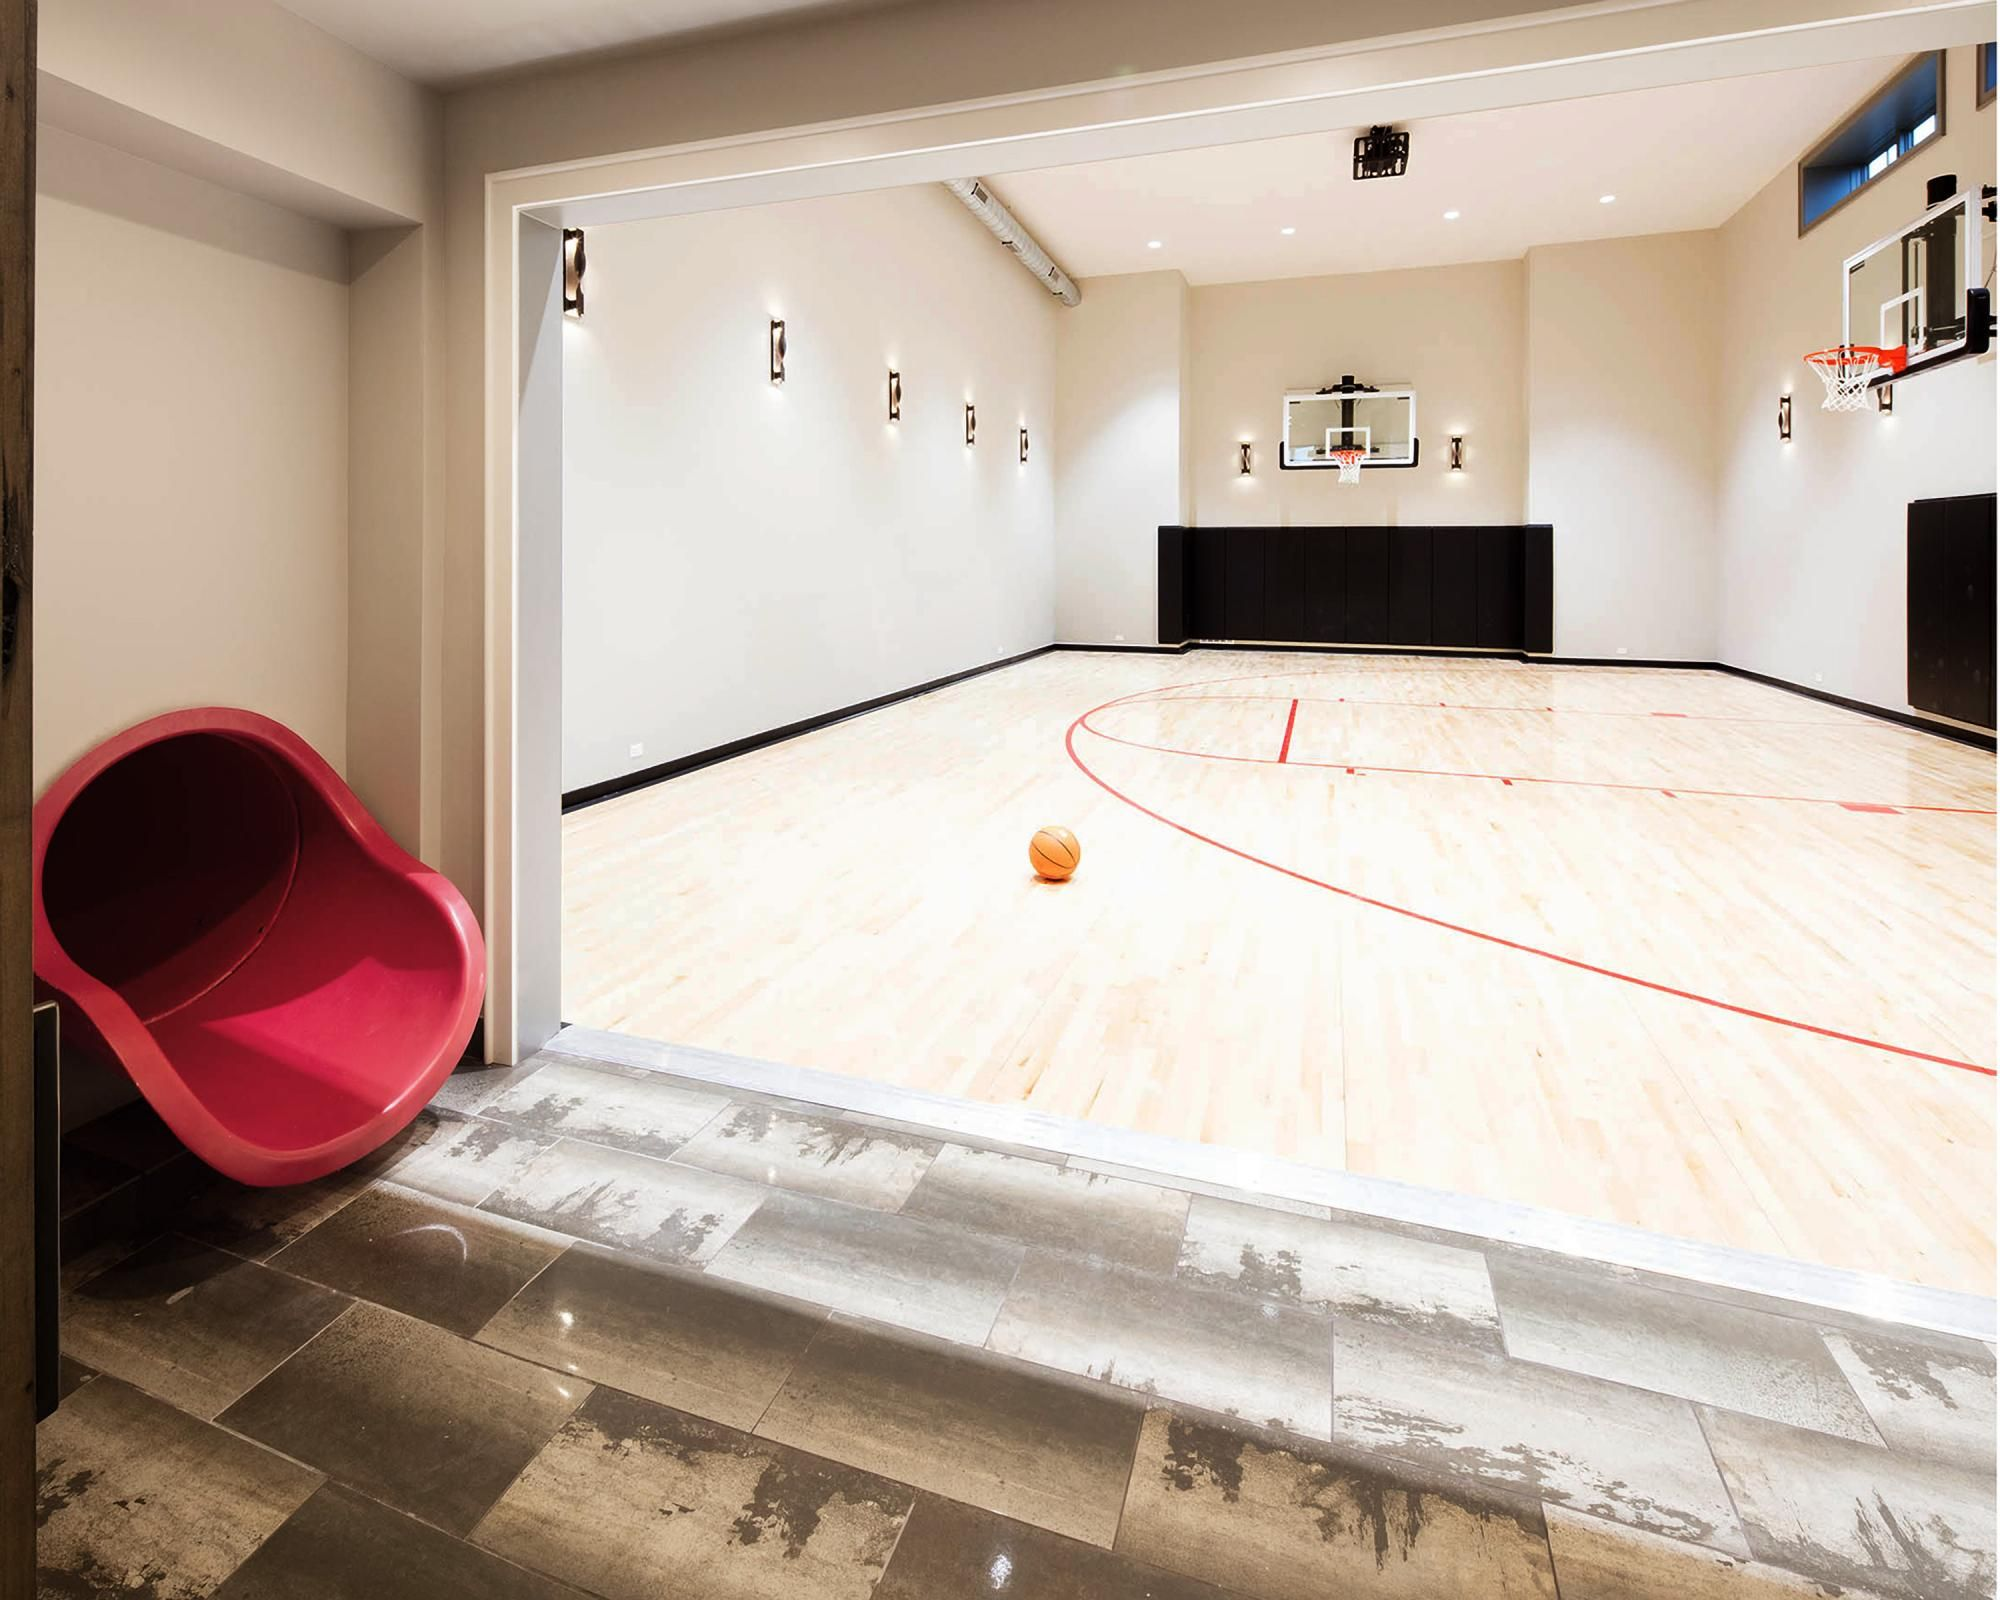 Pin By Vivian On Future Home Home Basketball Court Dream House House